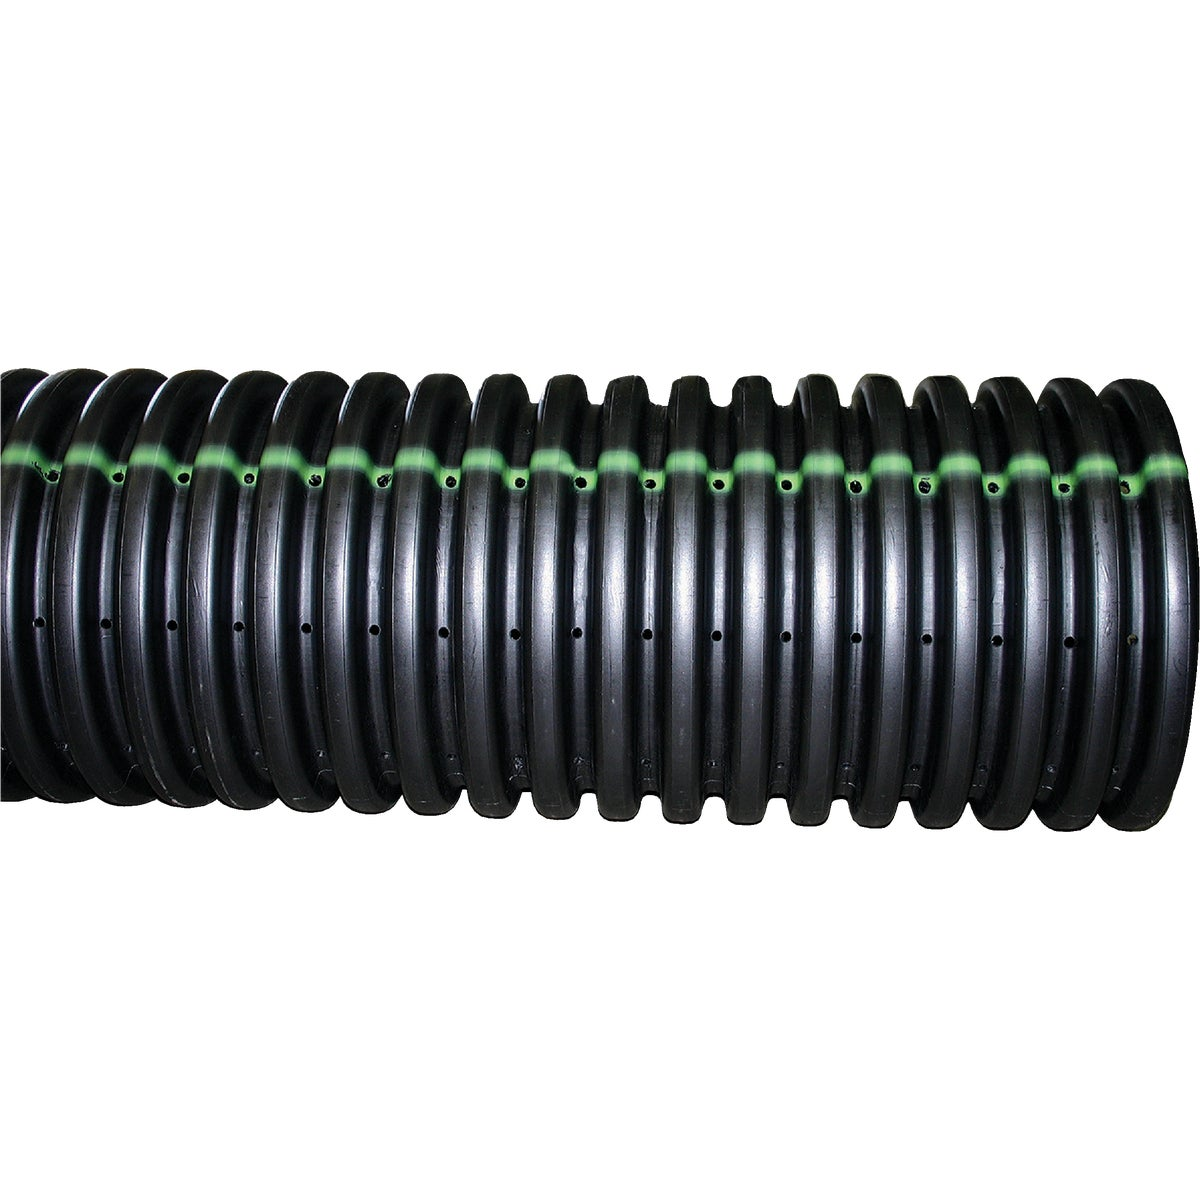 "3""X10' SLOTTED PIPE - 03040010 by Advanced Drainage Sy"